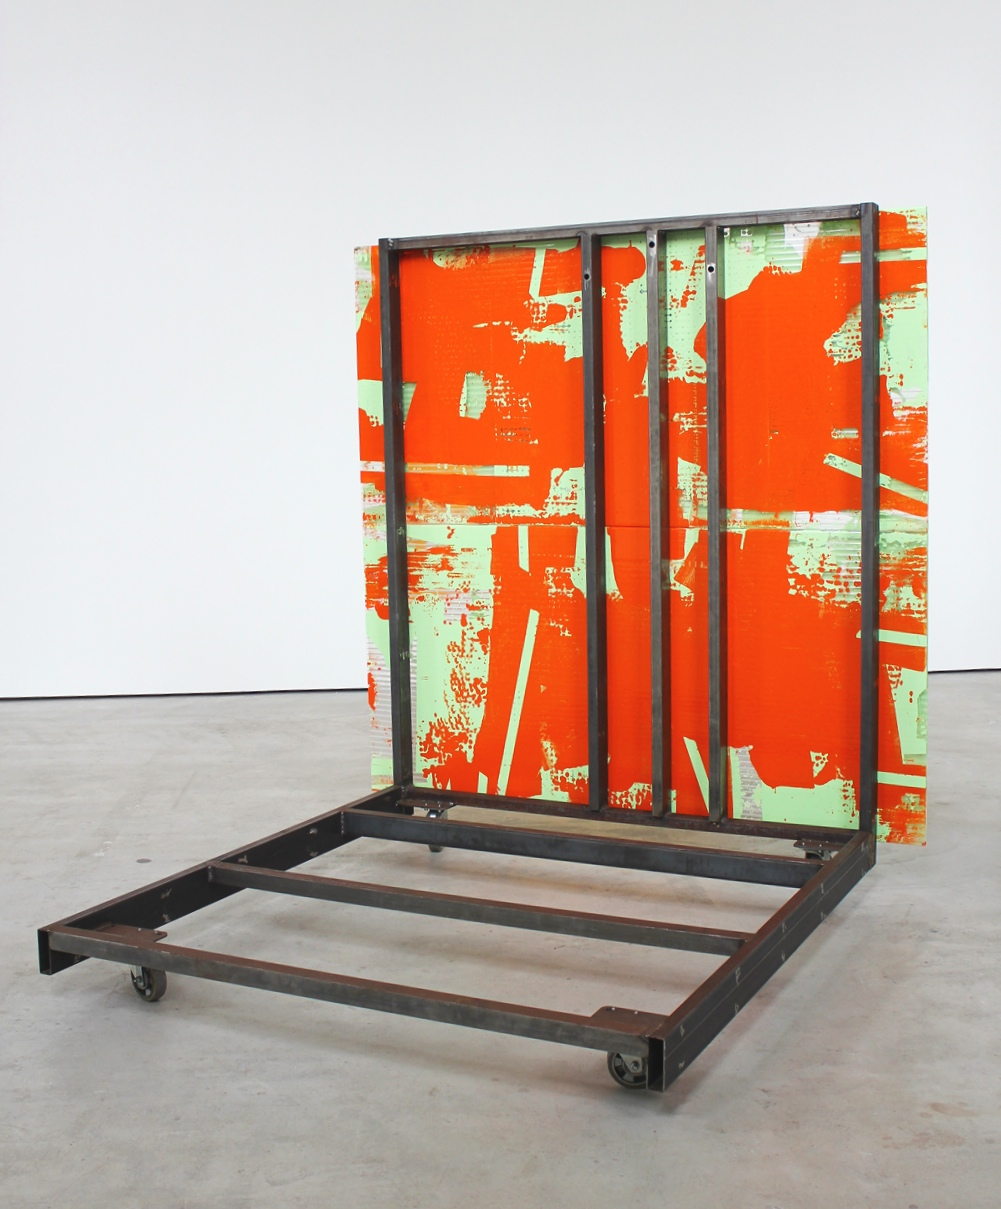 Intra Painting / Solothurn #6 (Rolling Platform) with Reto Emch 2019 84 x 79.375 x 75.7 inches